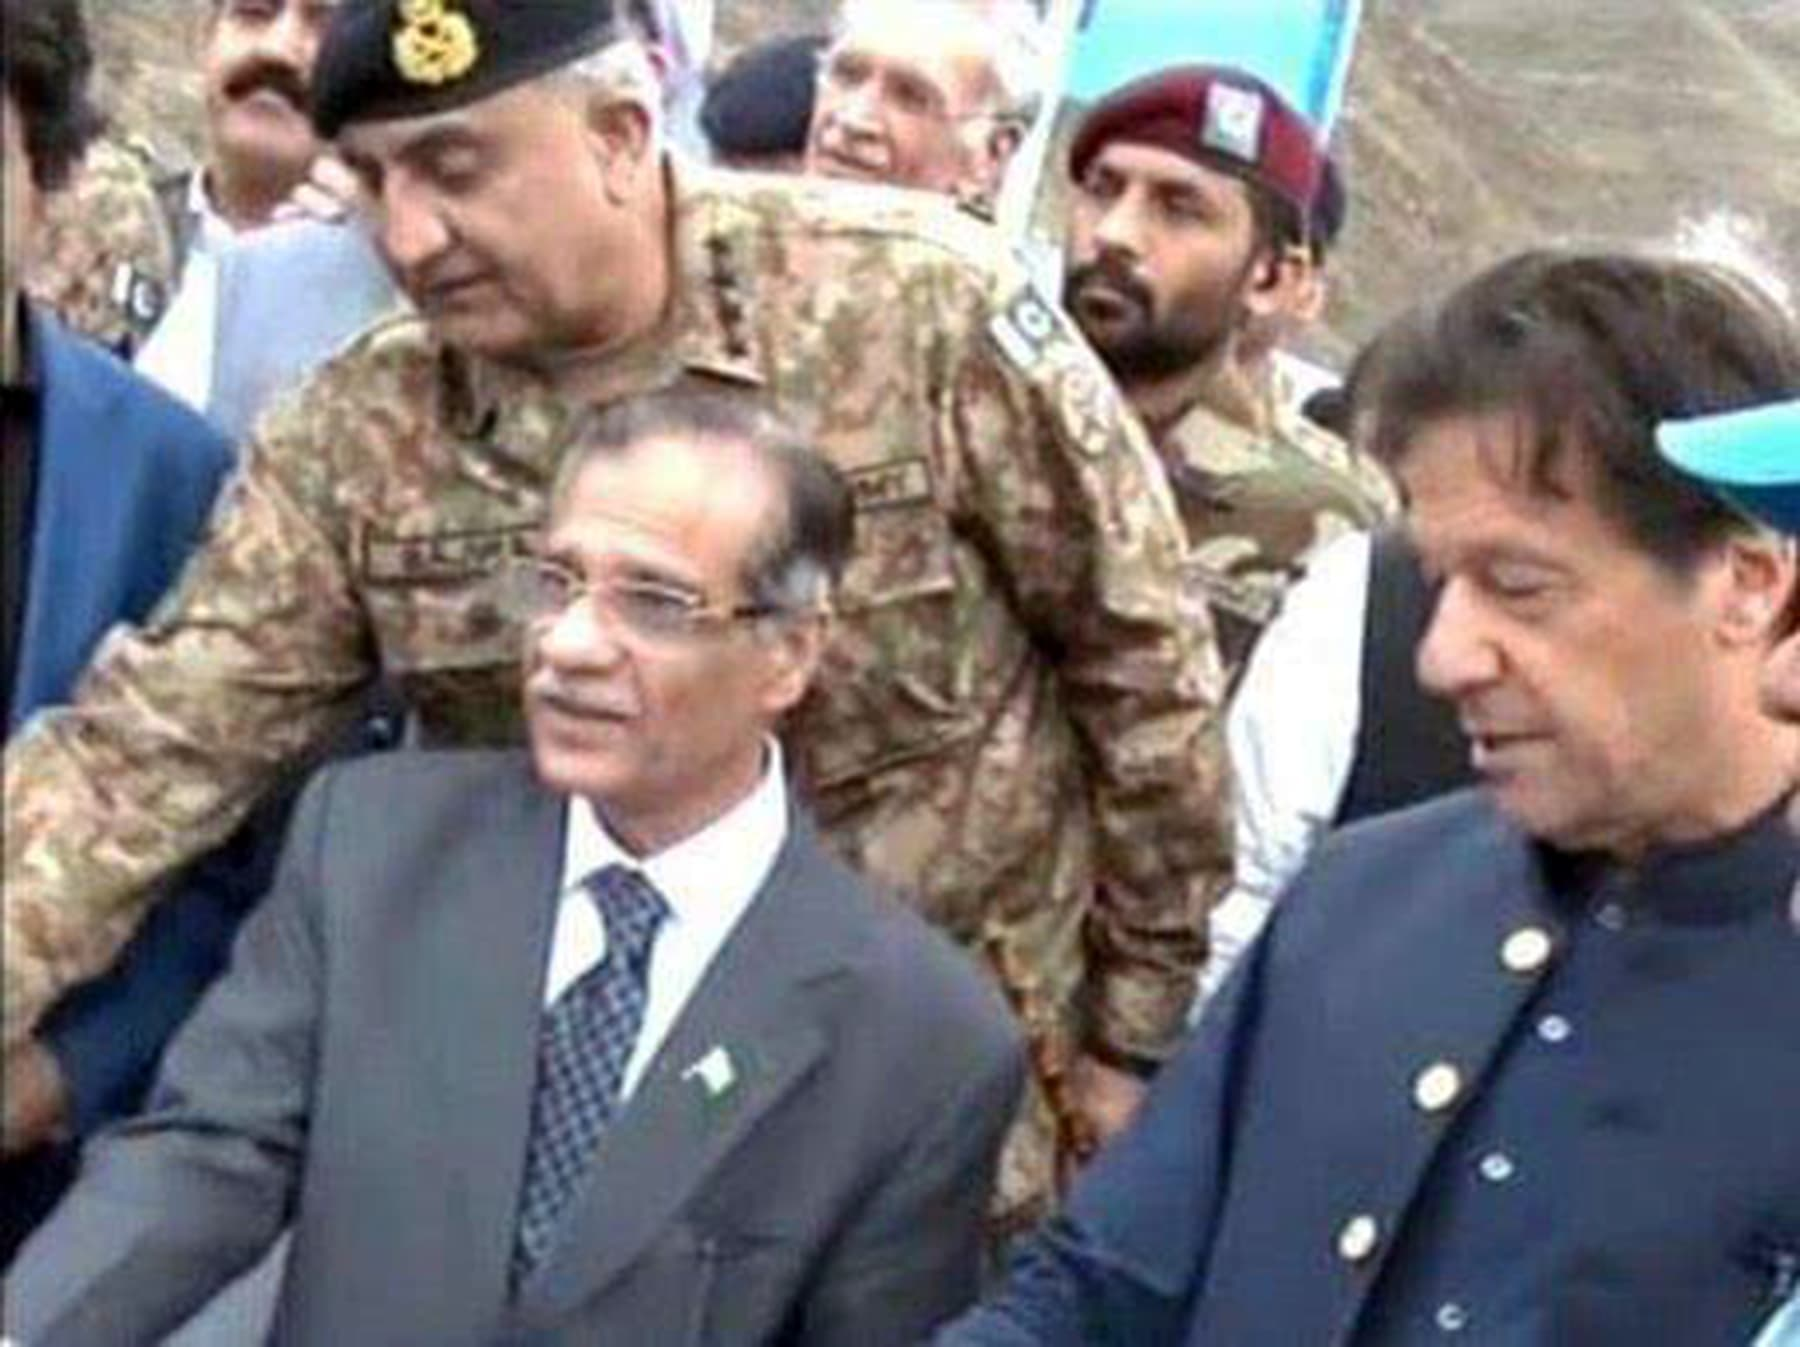 PM Imran inaugurates Mohmand Dam at groundbreaking ceremony - Pakistan - DAWN.COM